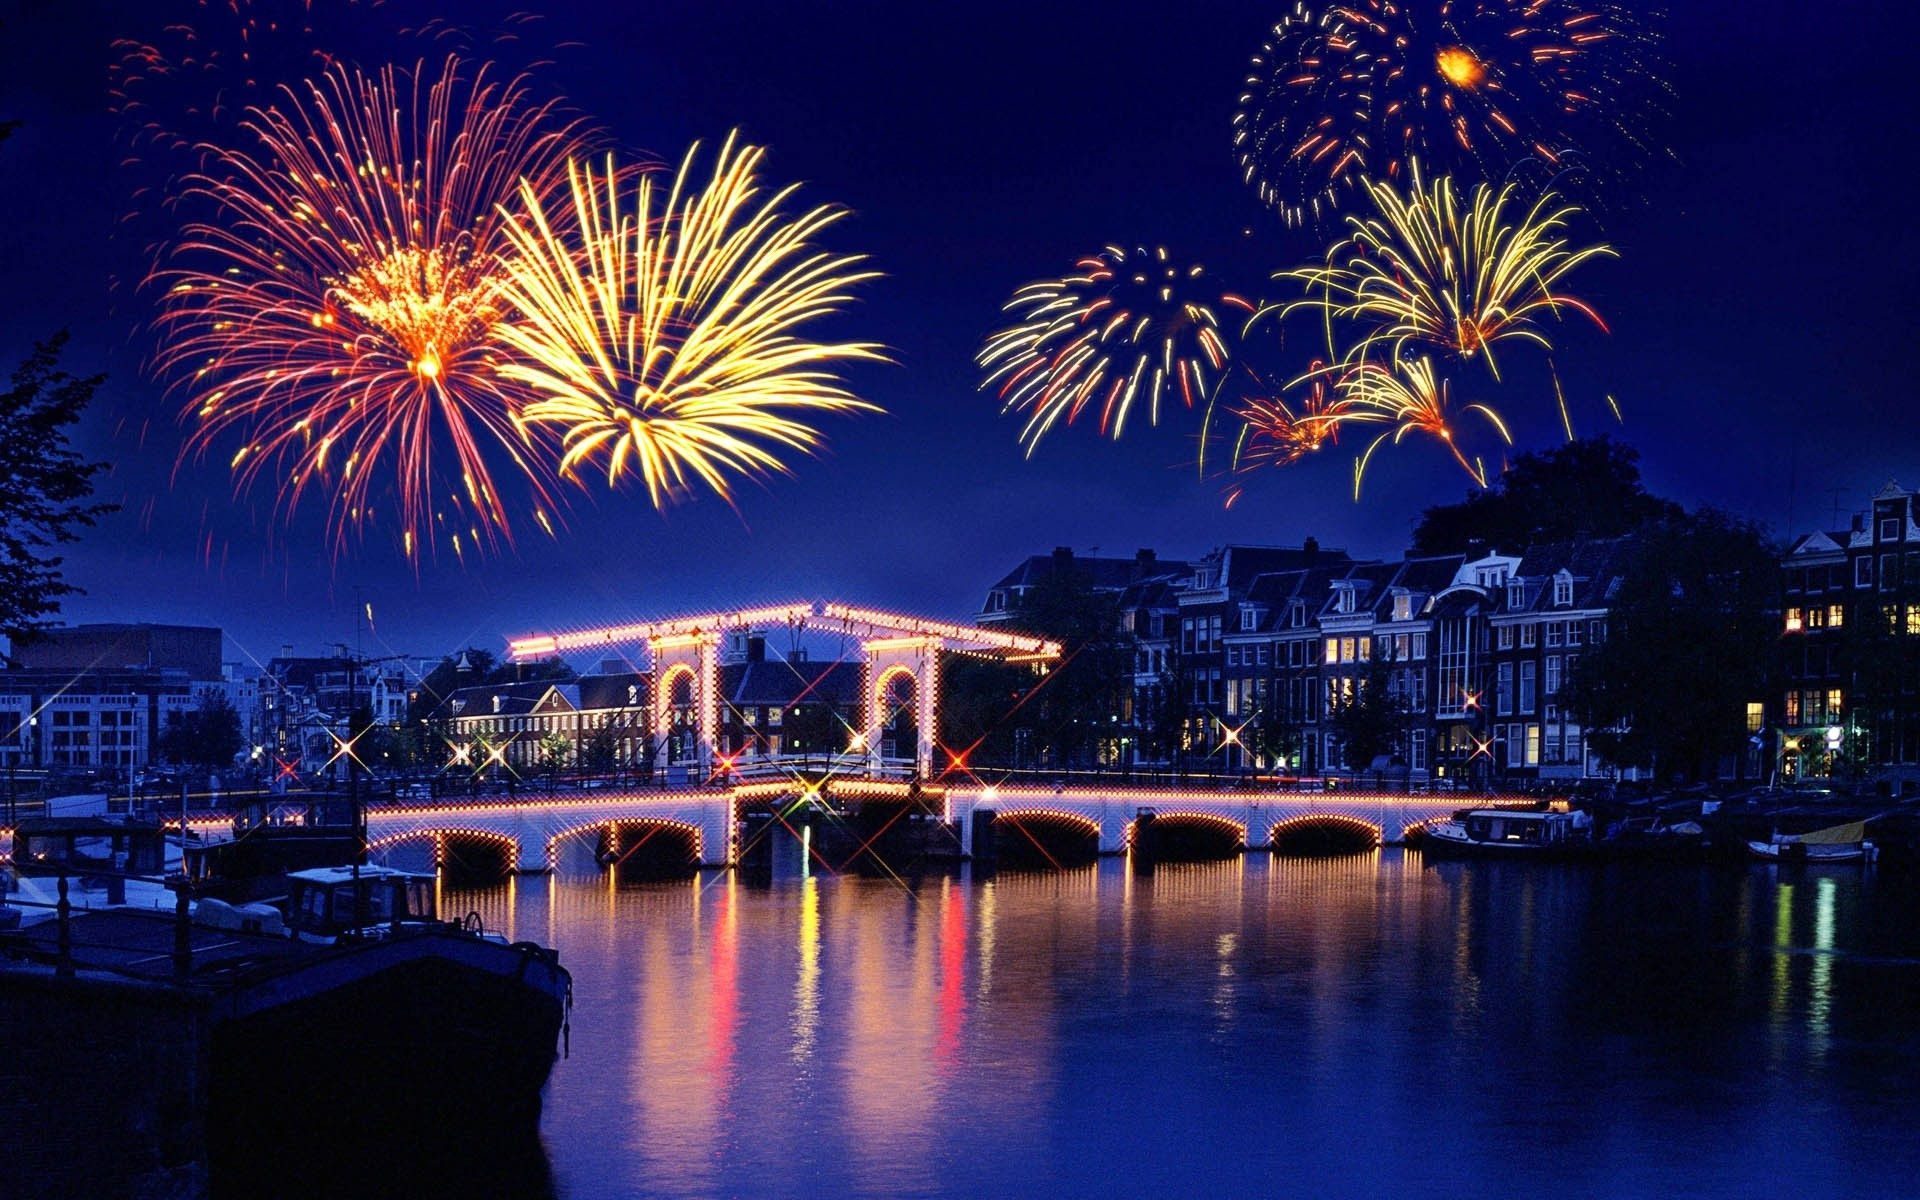 Best*} Happy New Year 2015 Quotes Greetings & Wallpapers *Wishes .